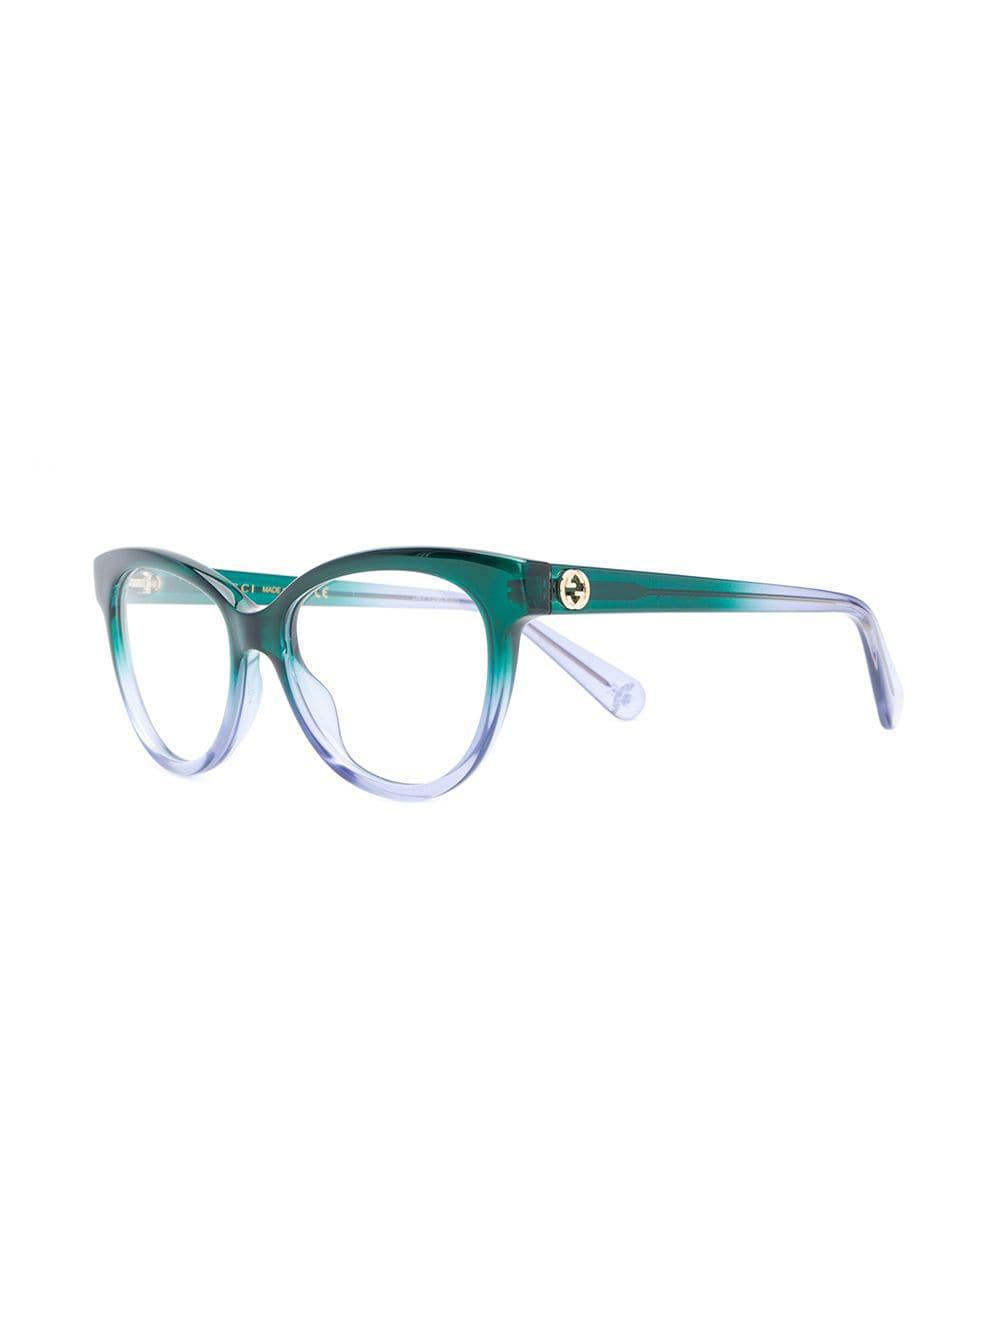 f7ec7358019ab Gucci Cat Eye Frame Glasses in Green - Lyst